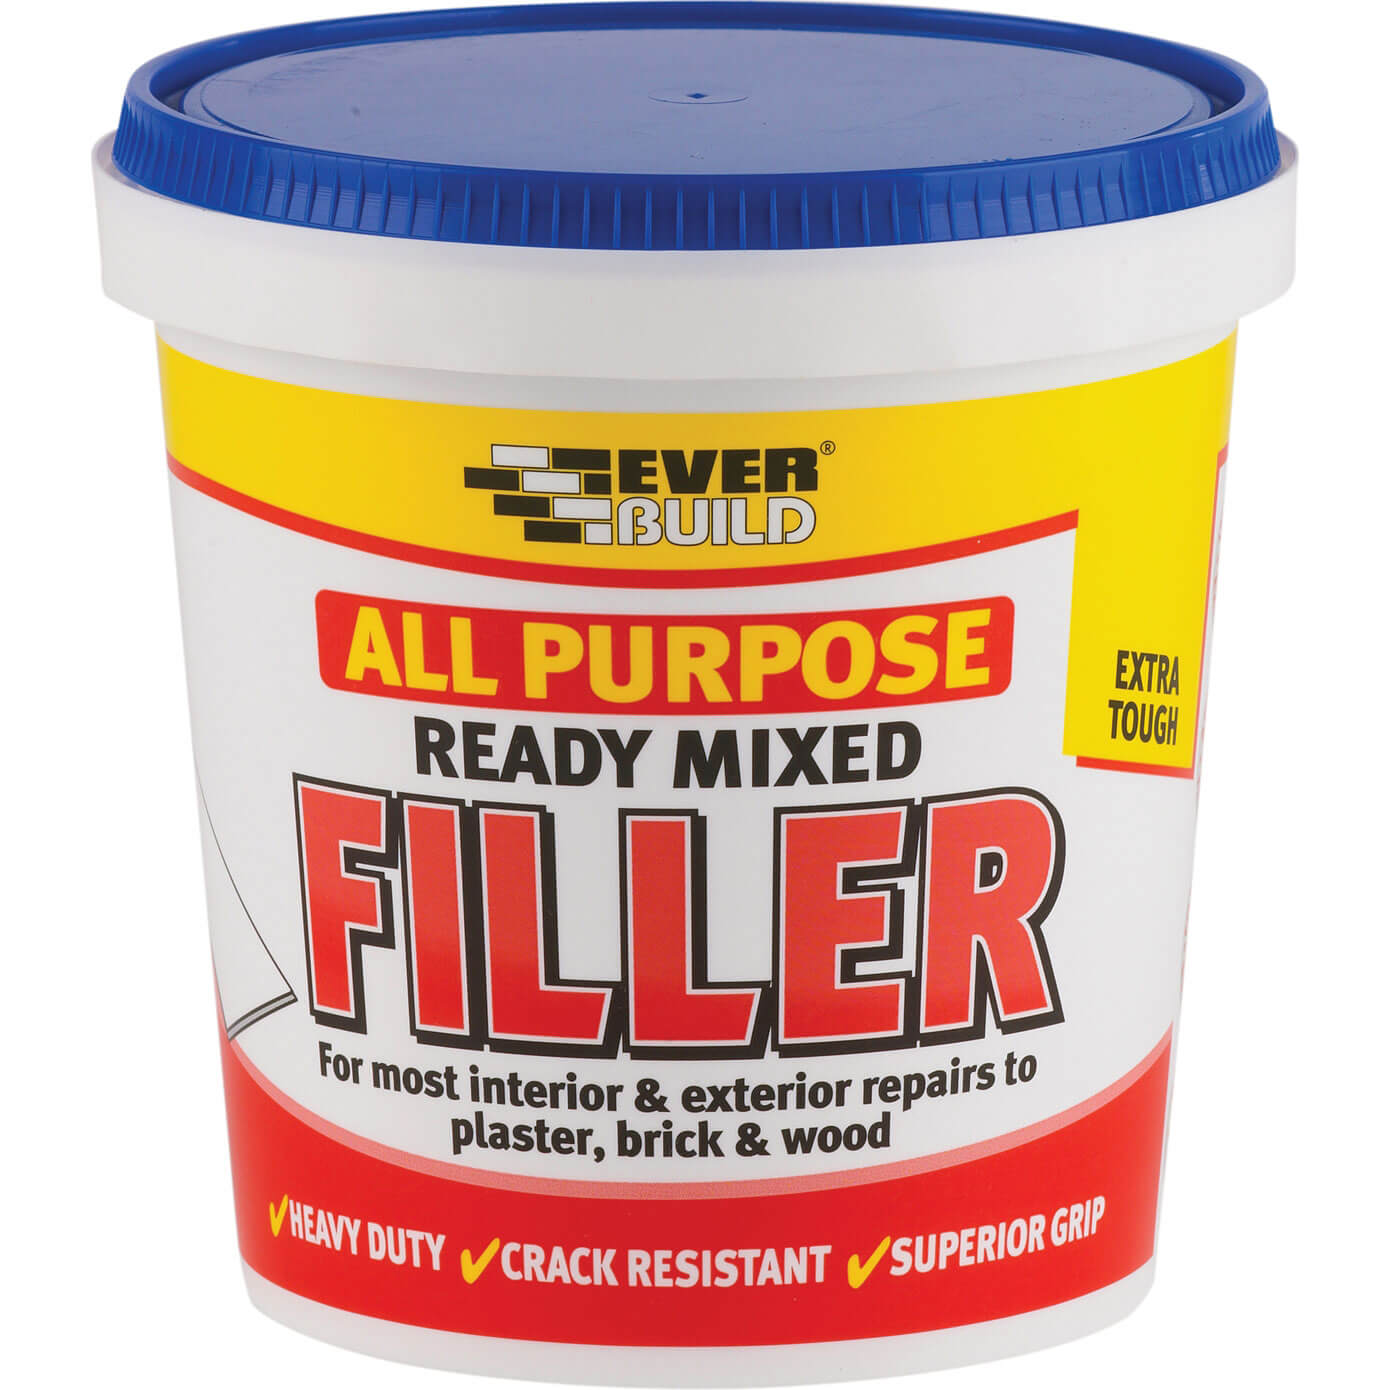 Tooled Up/Sealants & Adhesives/Fillers/Everbuild All Purpose Ready Mixed Filler 1kg